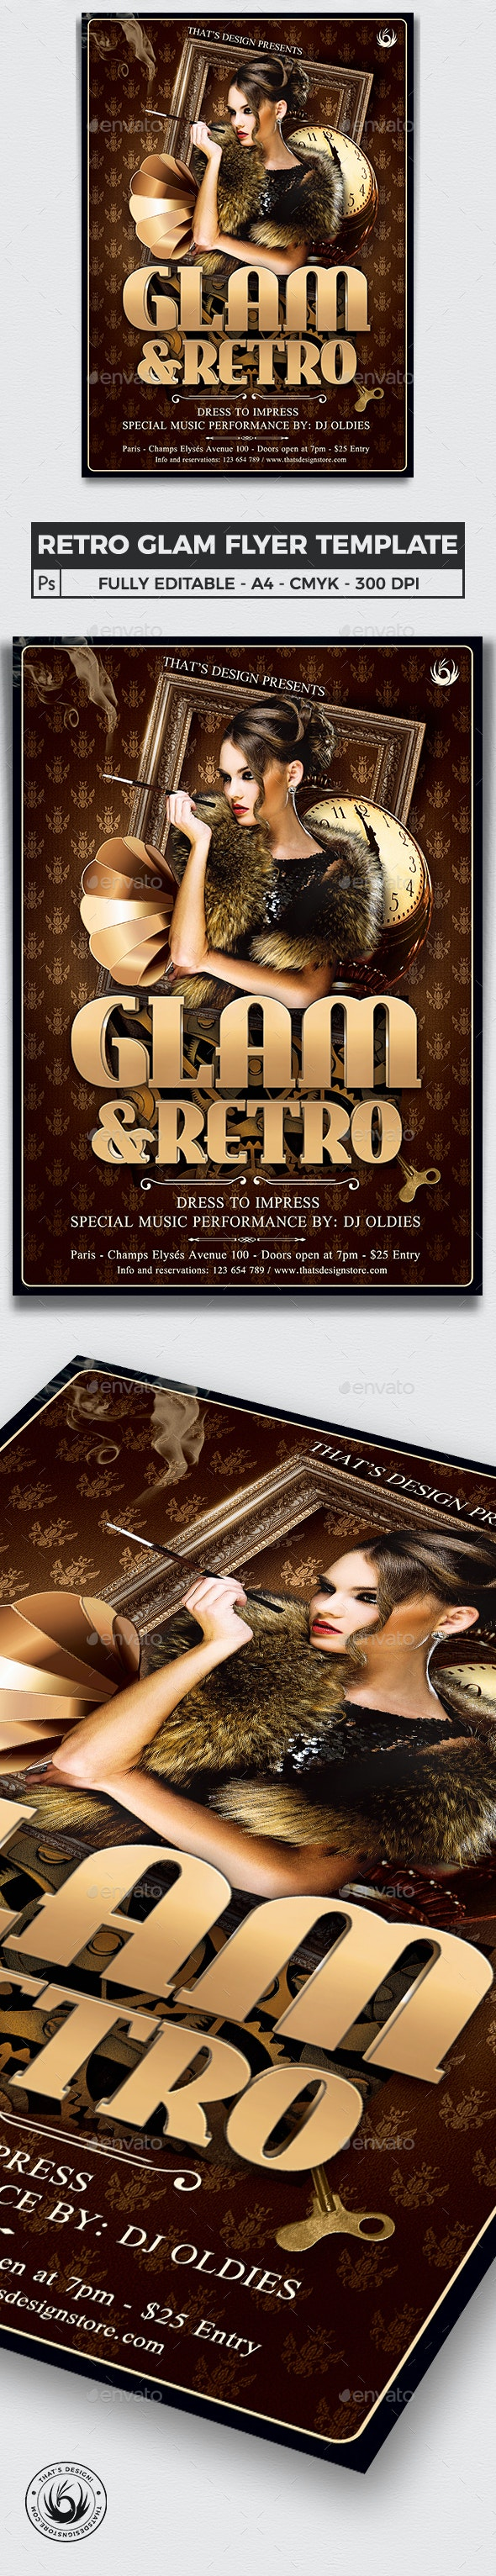 Retro Glam Flyer Template V2 - Clubs & Parties Events